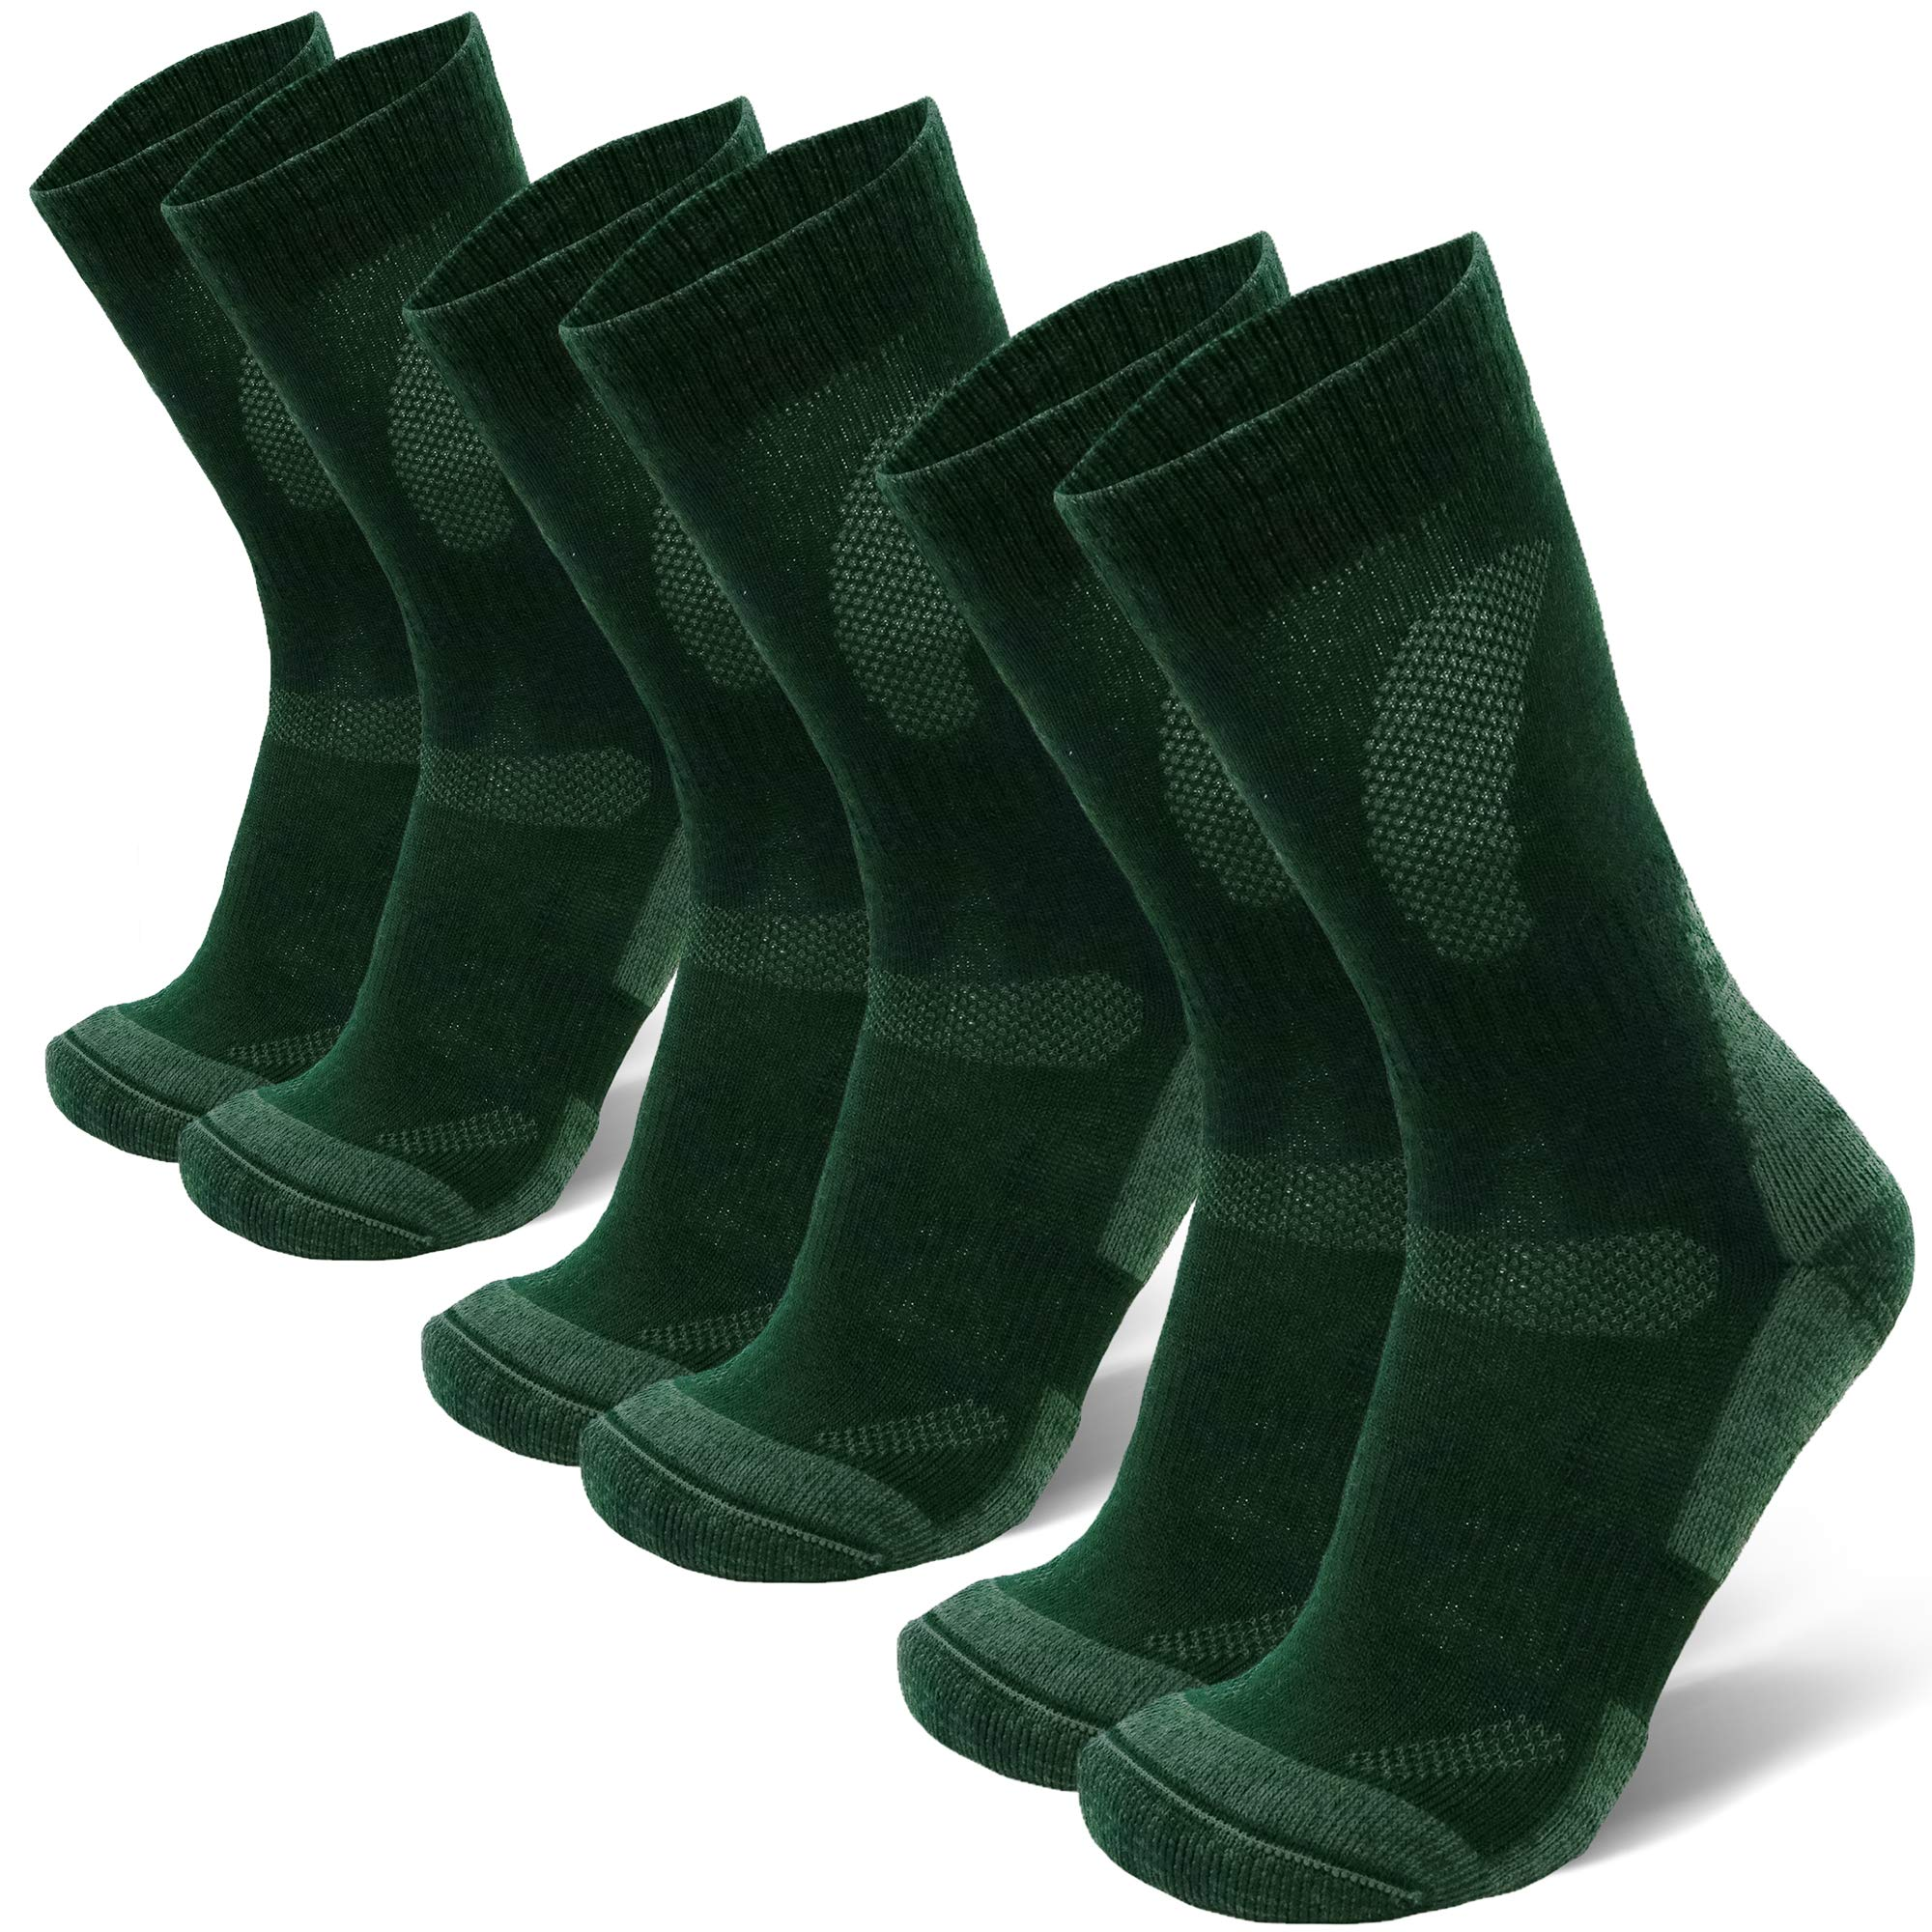 DANISH ENDURANCE Merino Wool Hiking & Trekking Socks (Forest Green 3 Pairs, US Women 8-10 // US Men 6.5-8.5) by DANISH ENDURANCE